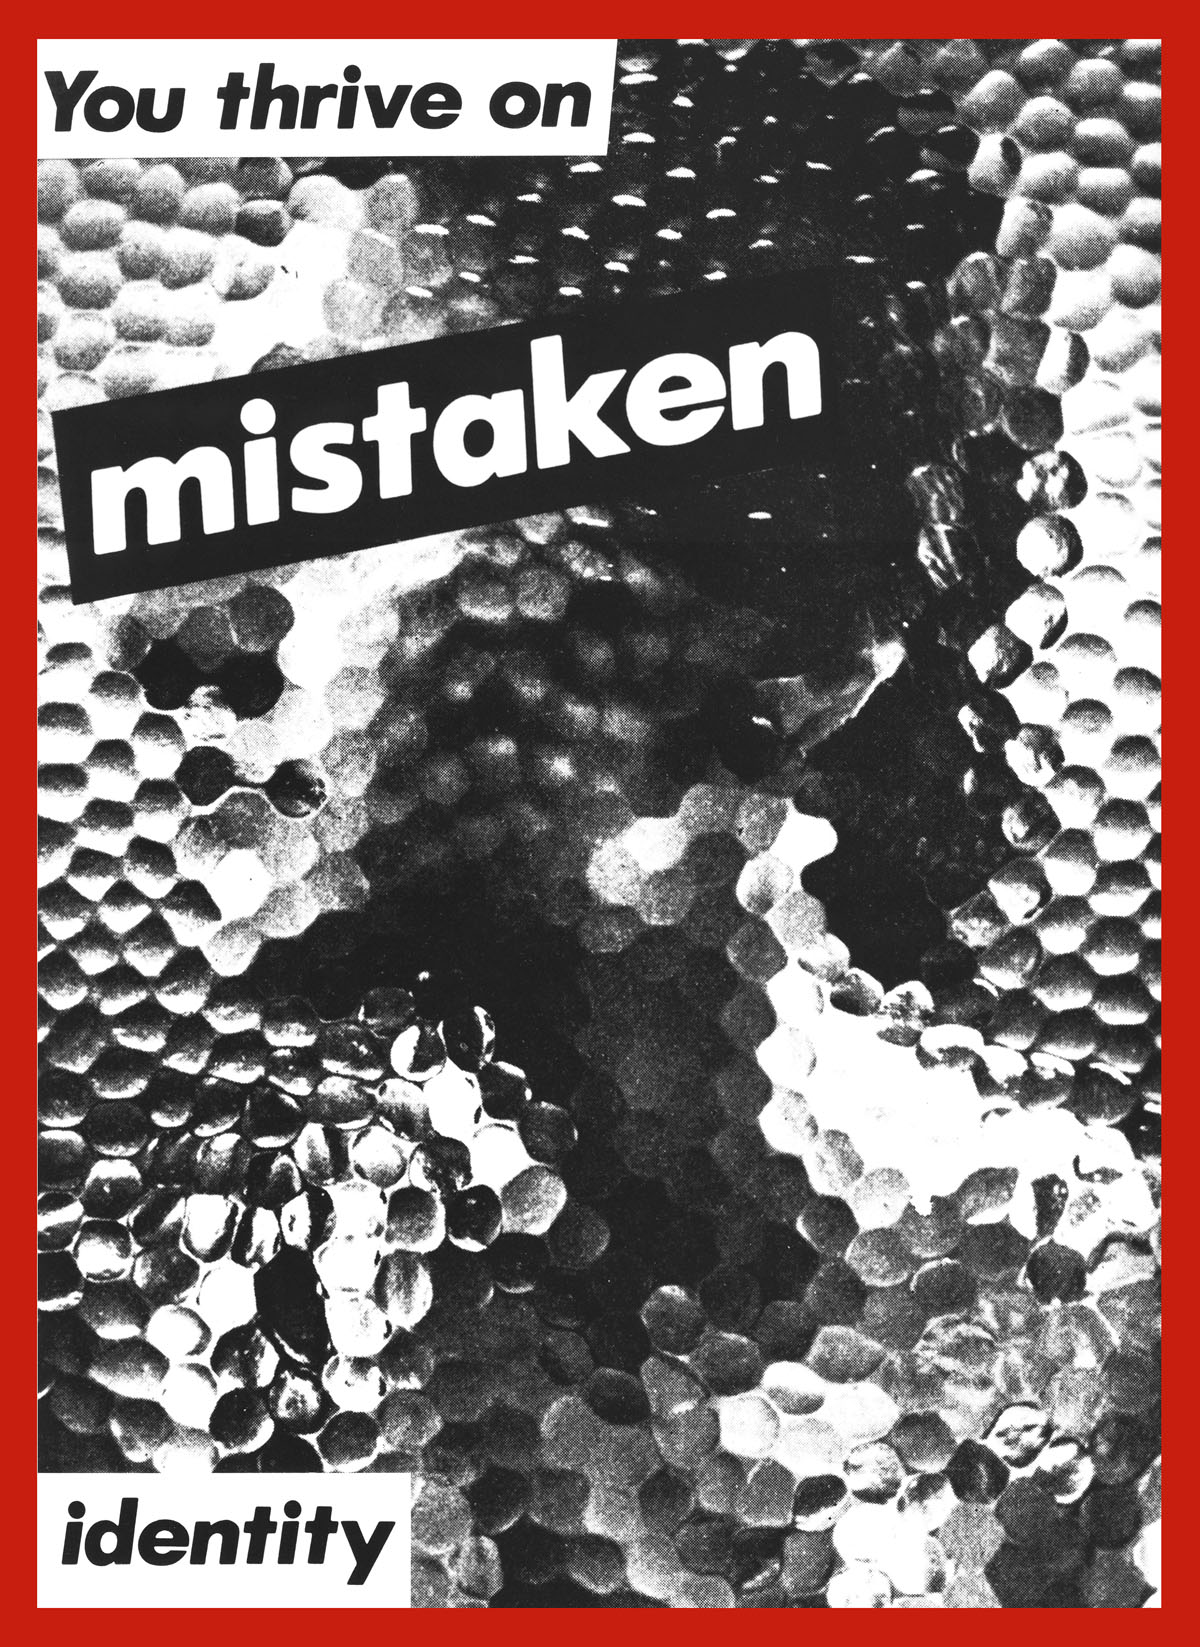 barbara kruger you thrive on mistaken identity art blart untitled you thrive on mistaken identity 1981